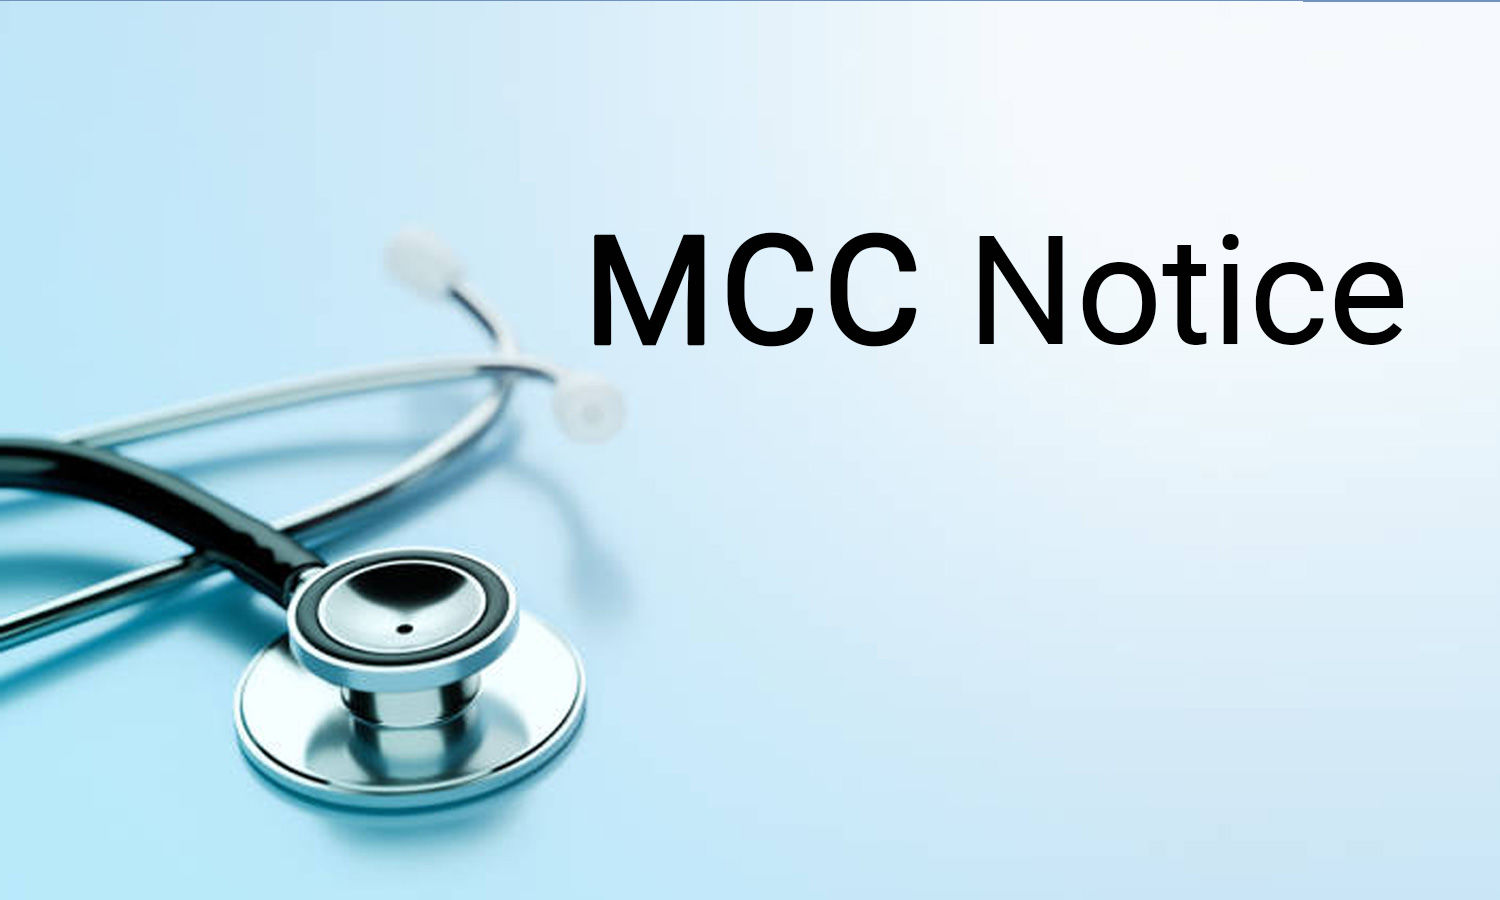 MBBS, BDS from IP university colleges can participate AIQ counselling: MCC issues notice